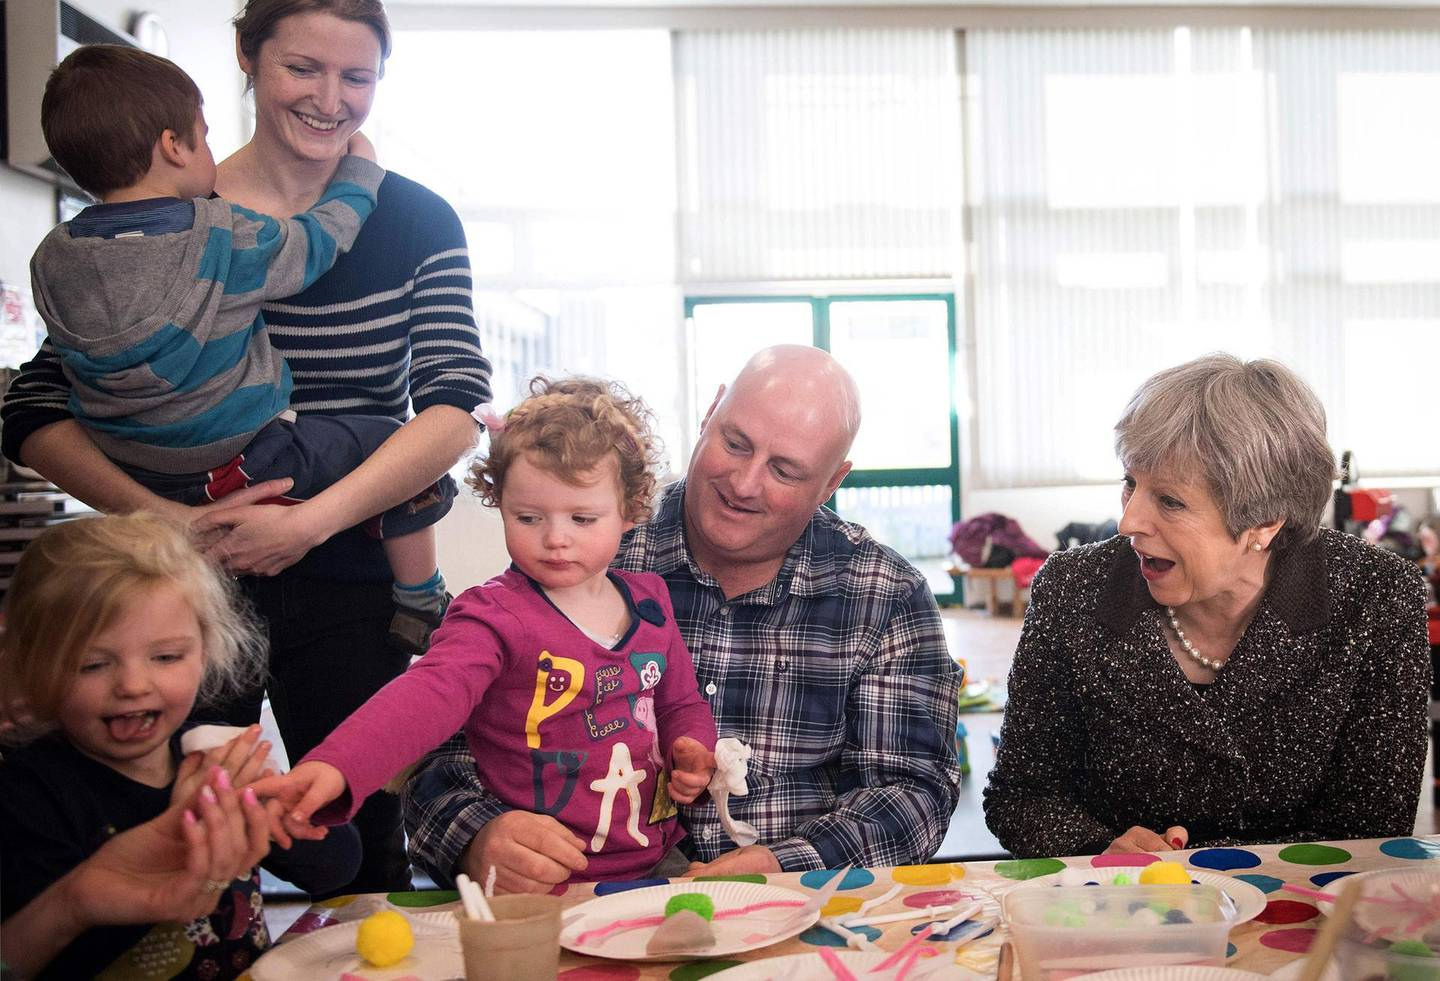 Britain's Prime Minister Theresa May meets a attendees at a local parent and toddler group at Heddon-On-the-Wall, St Andrew's Church of England Primary School in Newcastle, north east England on March 29, 2018, during a tour of the United Kingdom, timed to coincide with one year until the United Kingdom leaves the European Union (Brexit). British Prime Minister Theresa May will mark the one-year countdown to Brexit on March 29, 2018 with a fast-paced national tour, aiming to unite the UK's four nations. She will take in Scotland, England, Northern Ireland and Wales during her day-long tour, aiming to rally support ahead of Britain's EU departure on 29 March, 2019.  / AFP PHOTO / POOL / Stefan Rousseau